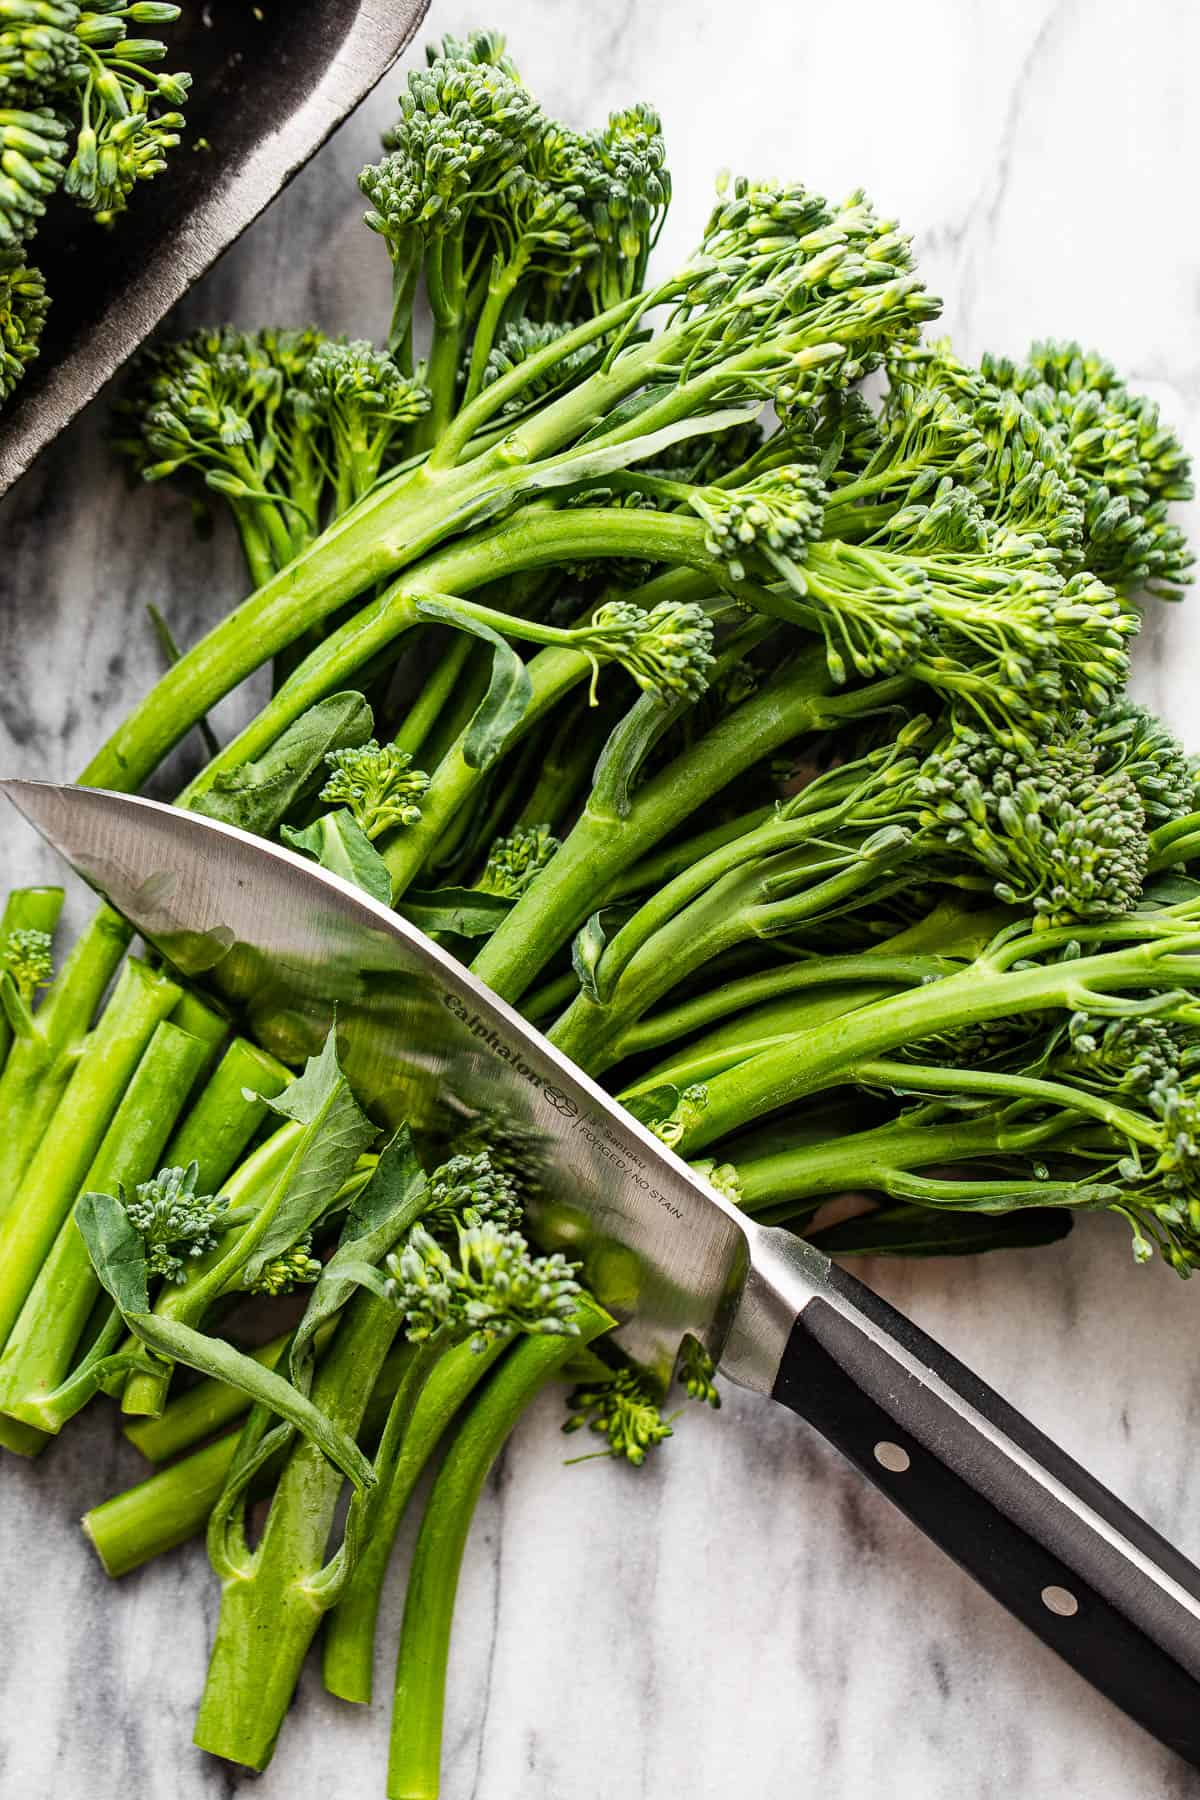 trimming broccolini with a knife